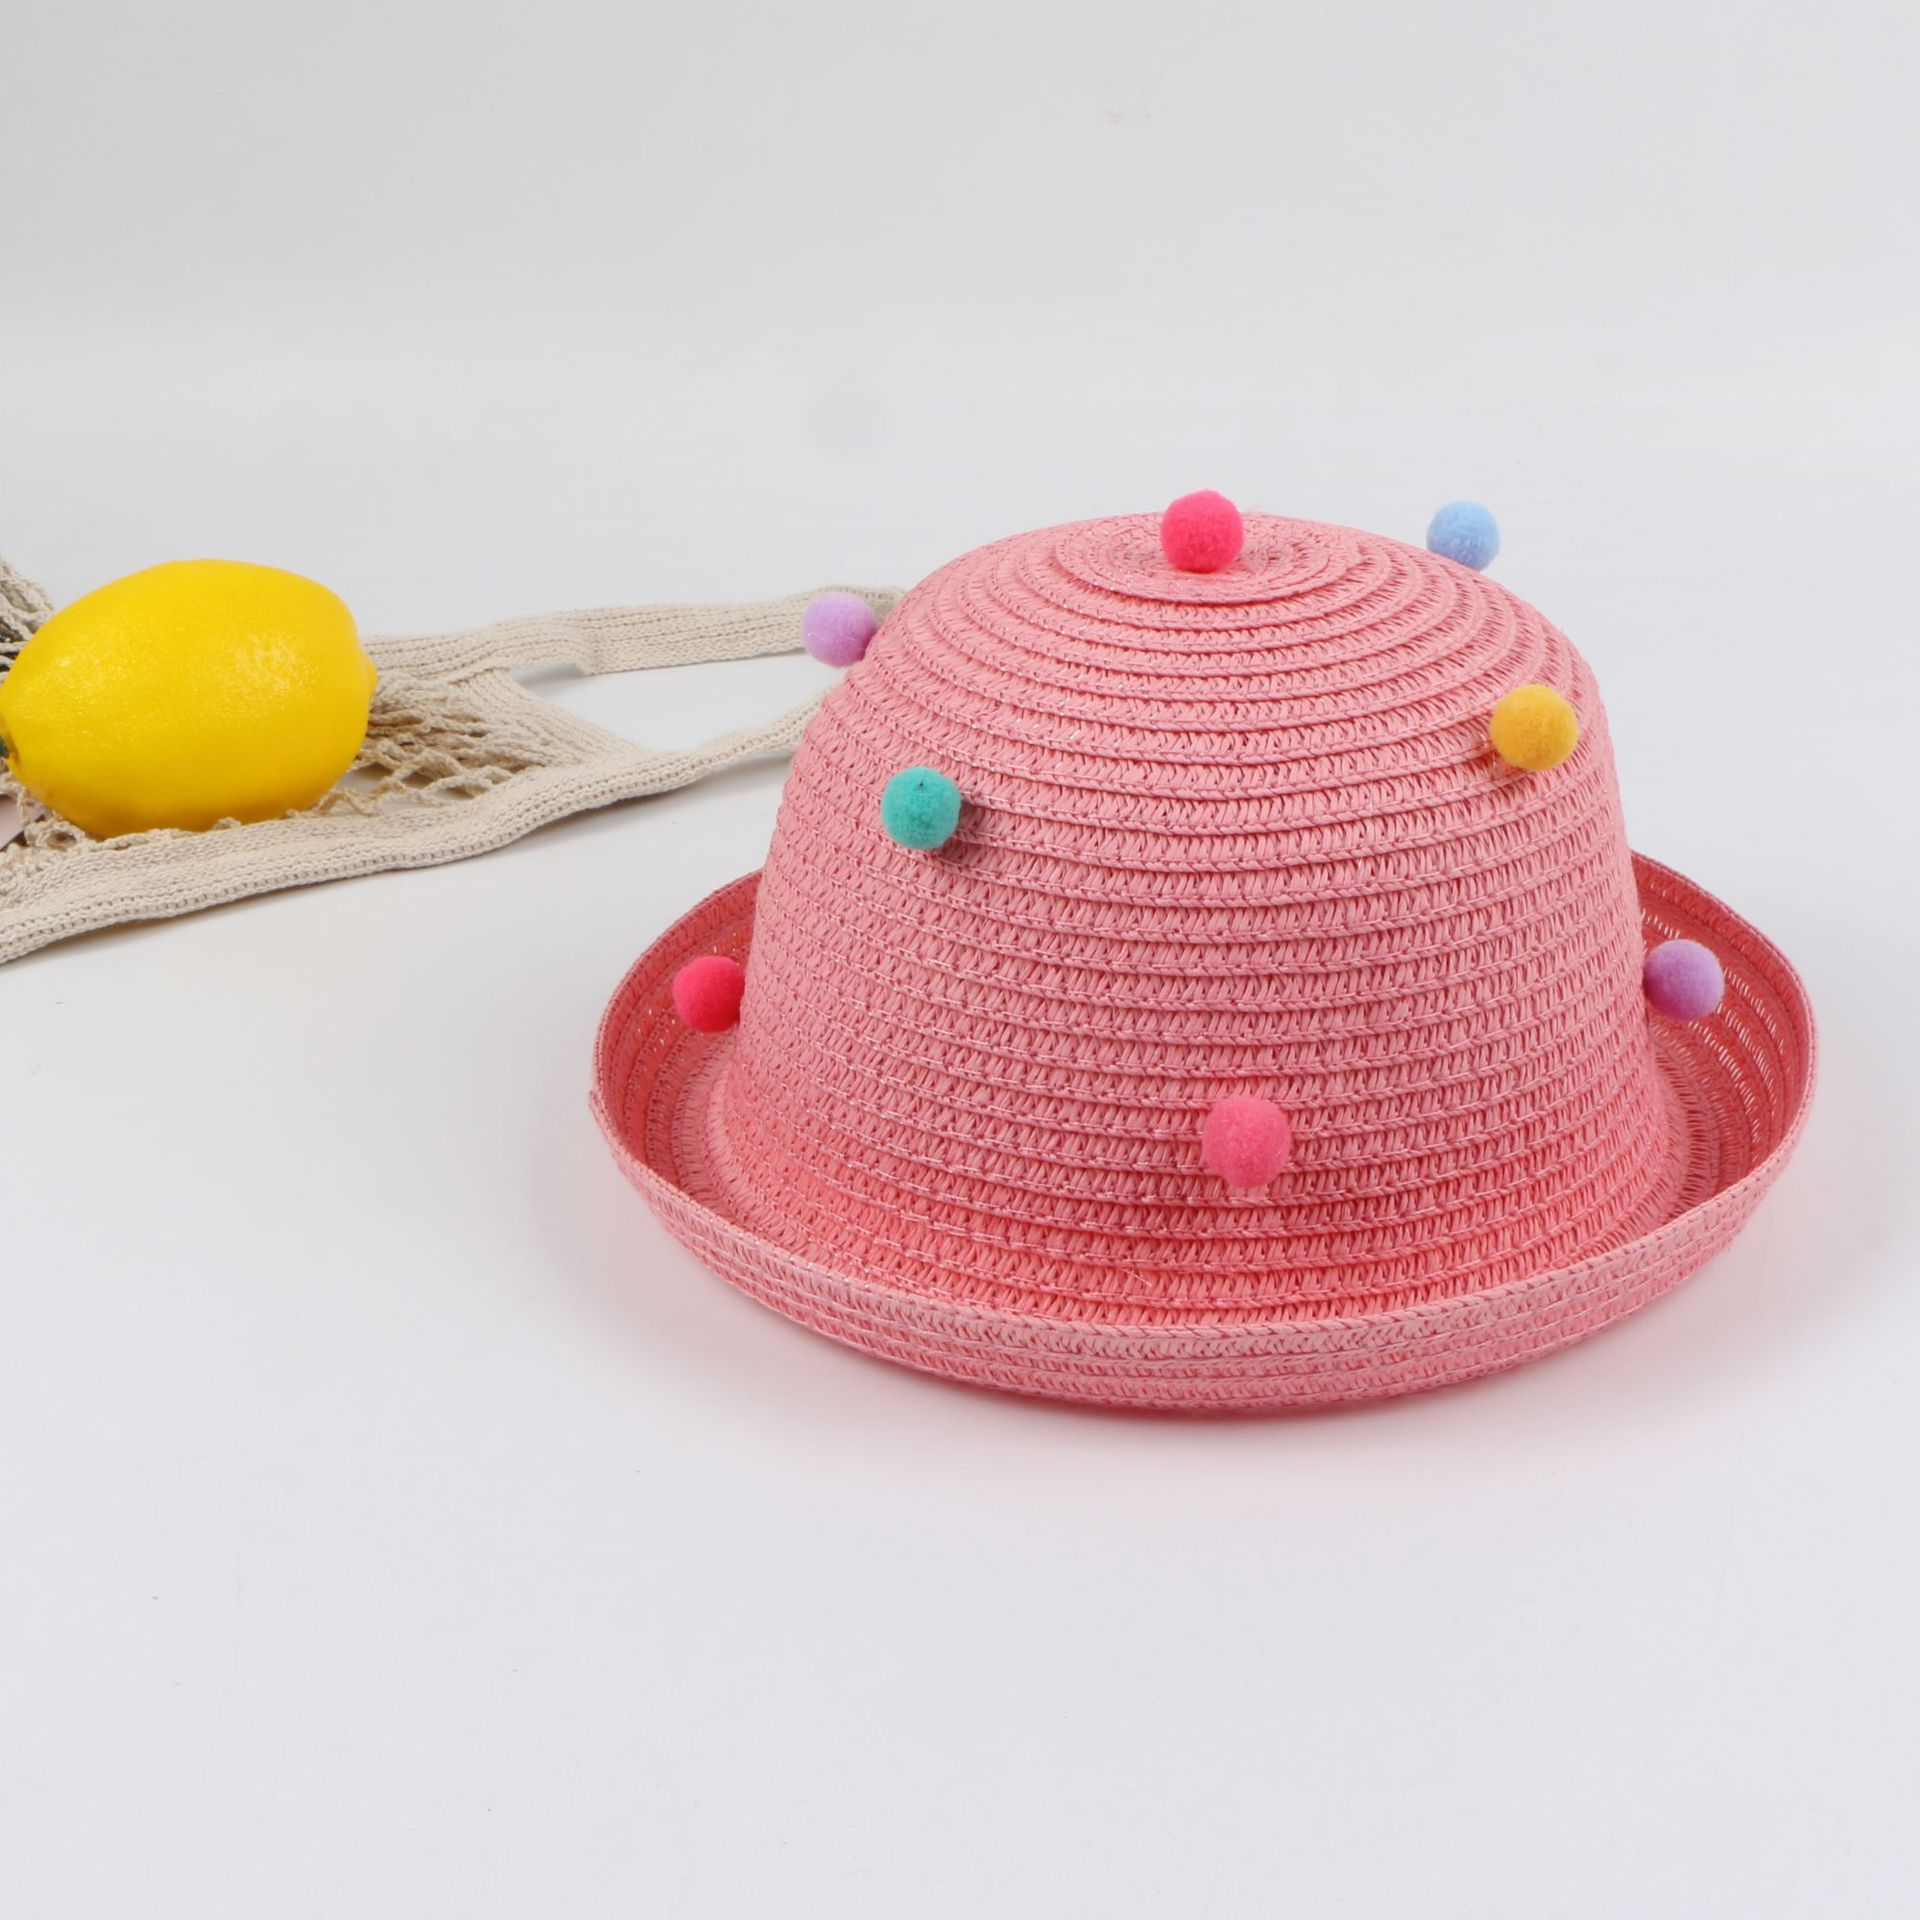 Children's meatball hat men and women baby straw hat summer sun hat NHTQ206940